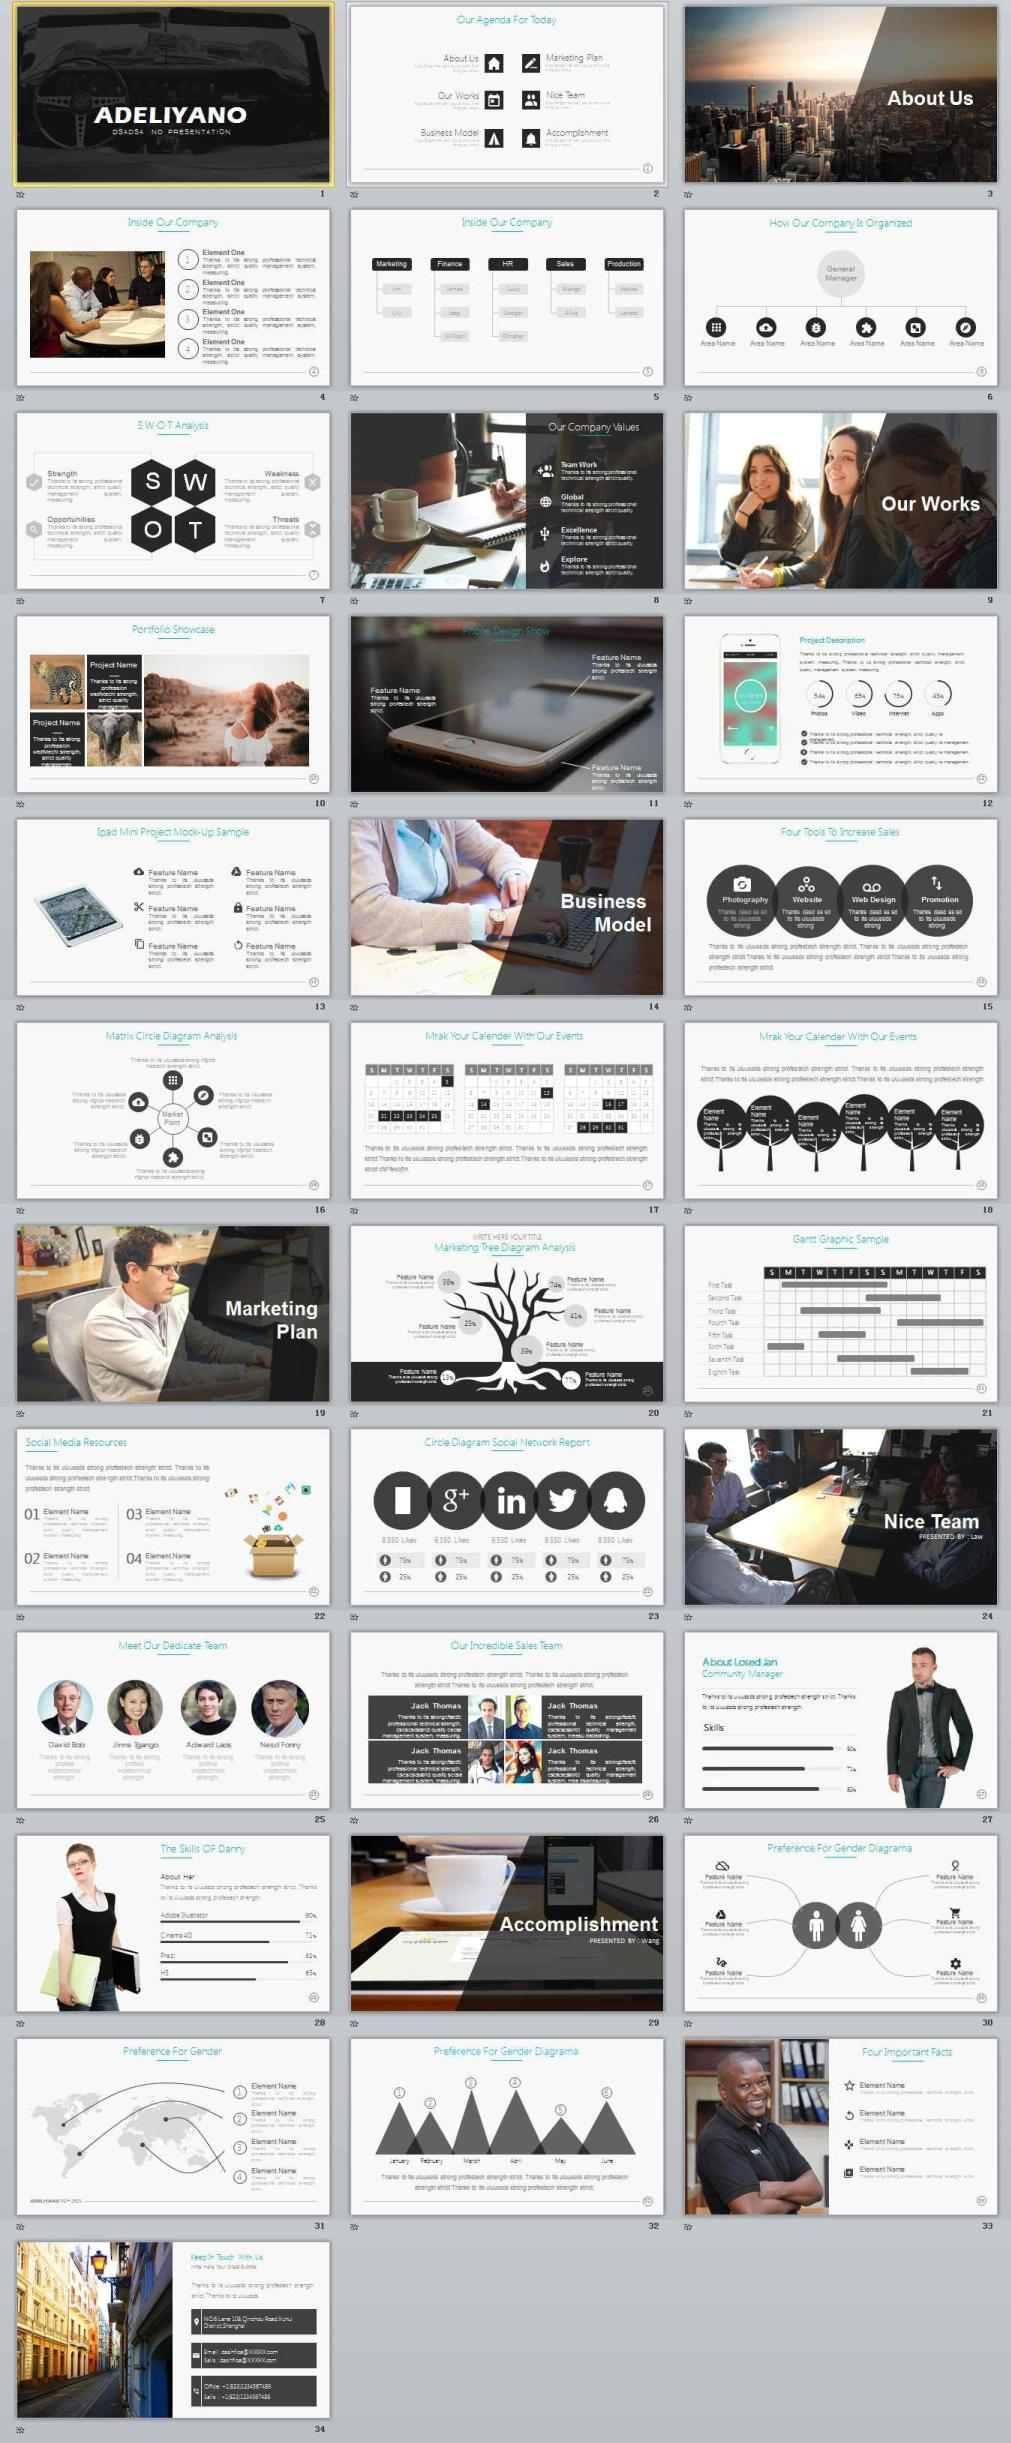 34 business report powerpoint templates the highest quality 34 business report powerpoint templates the highest quality powerpoint templates and keynote templates download flashek Image collections